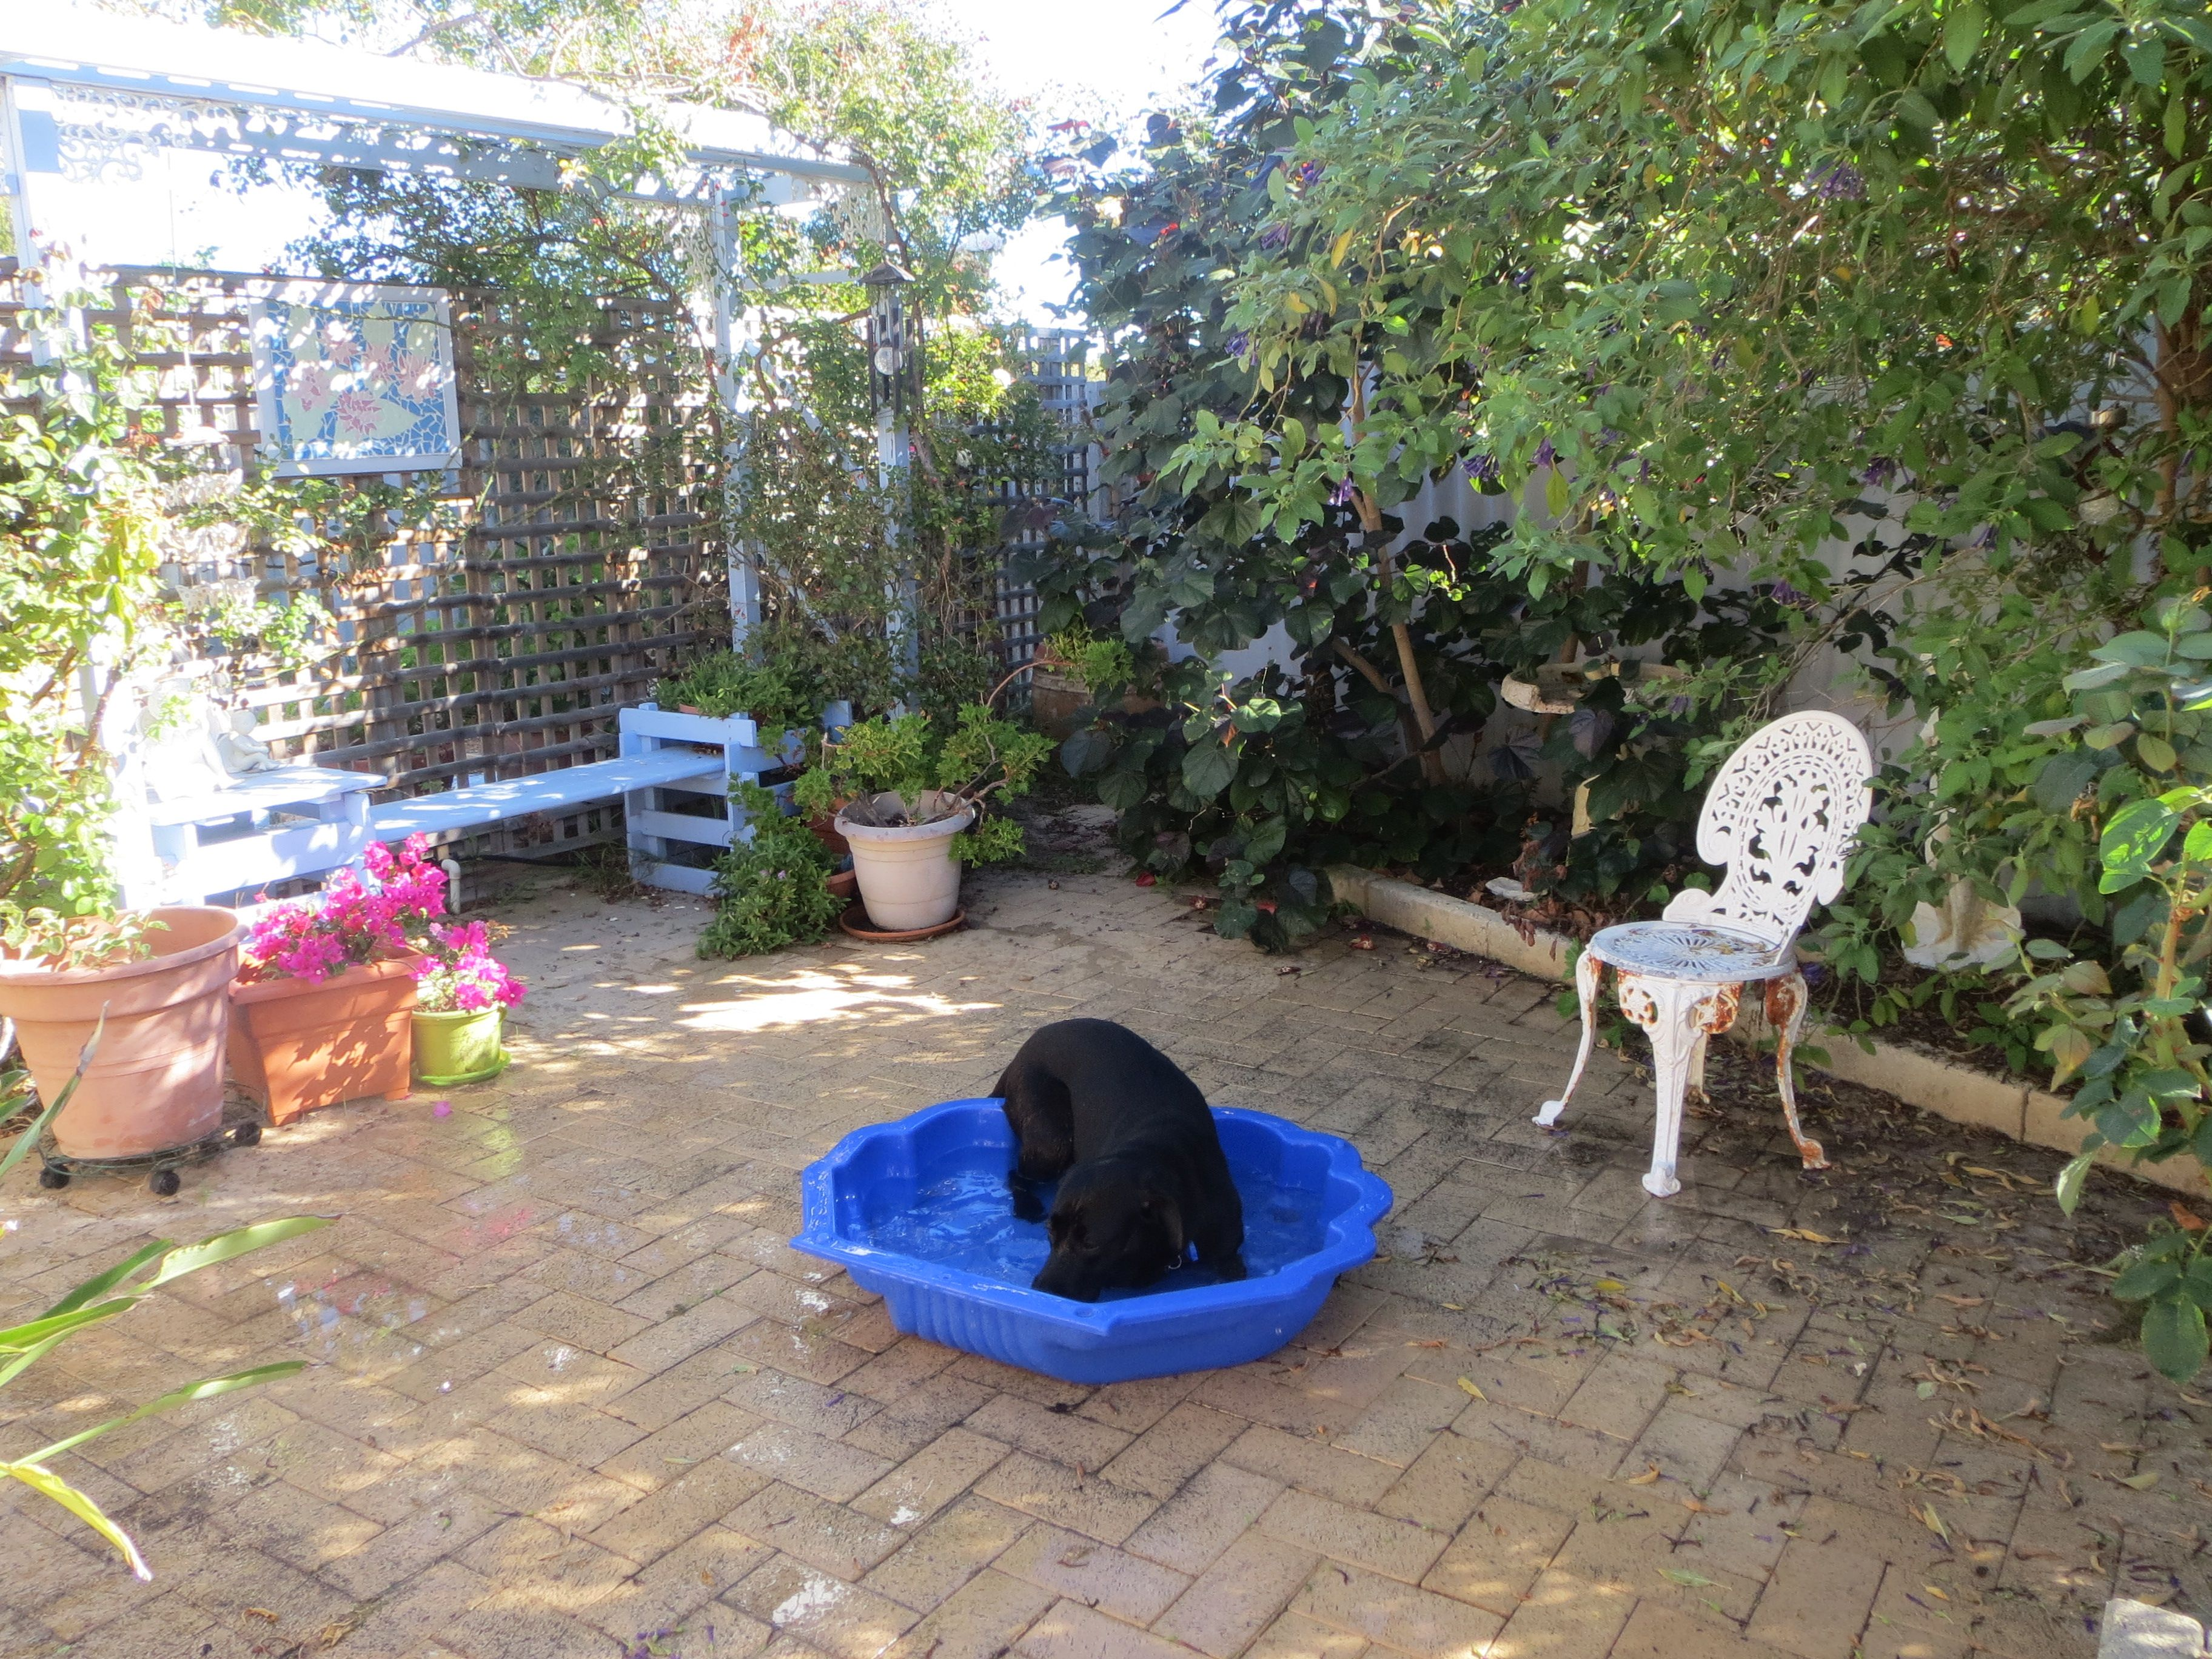 My Seeing Eye Dog Bess playing in her water shell